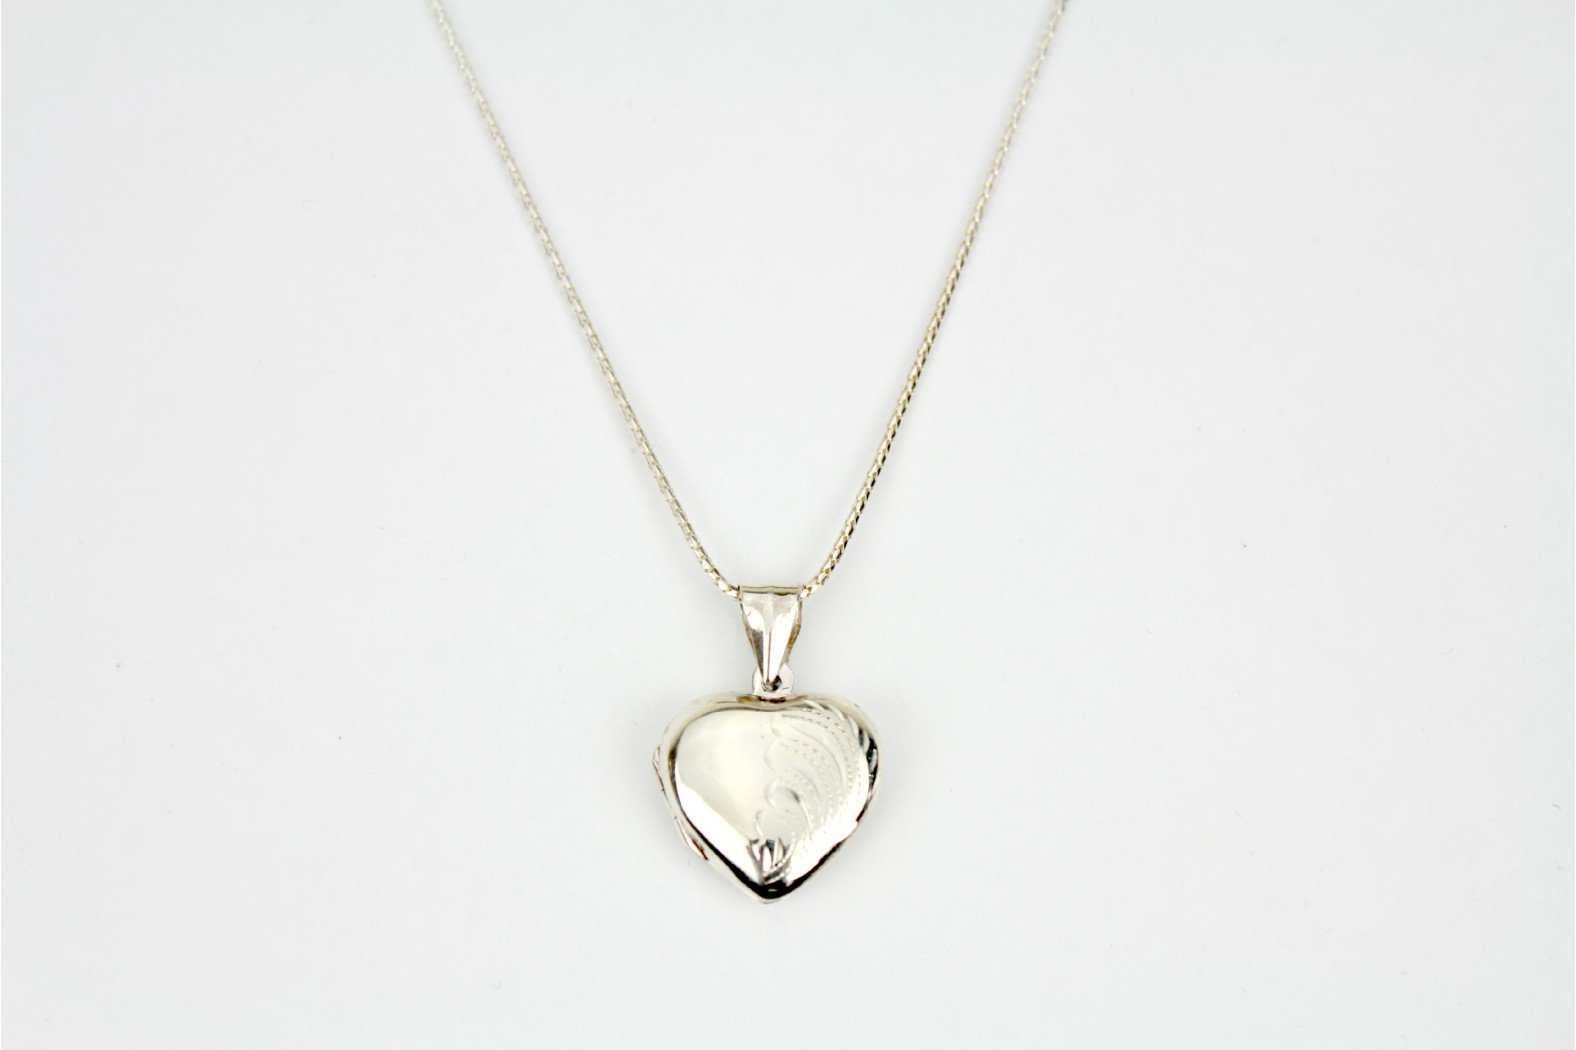 Polished Silver heart locket with etched design on 18ins 45cm popcorn chain